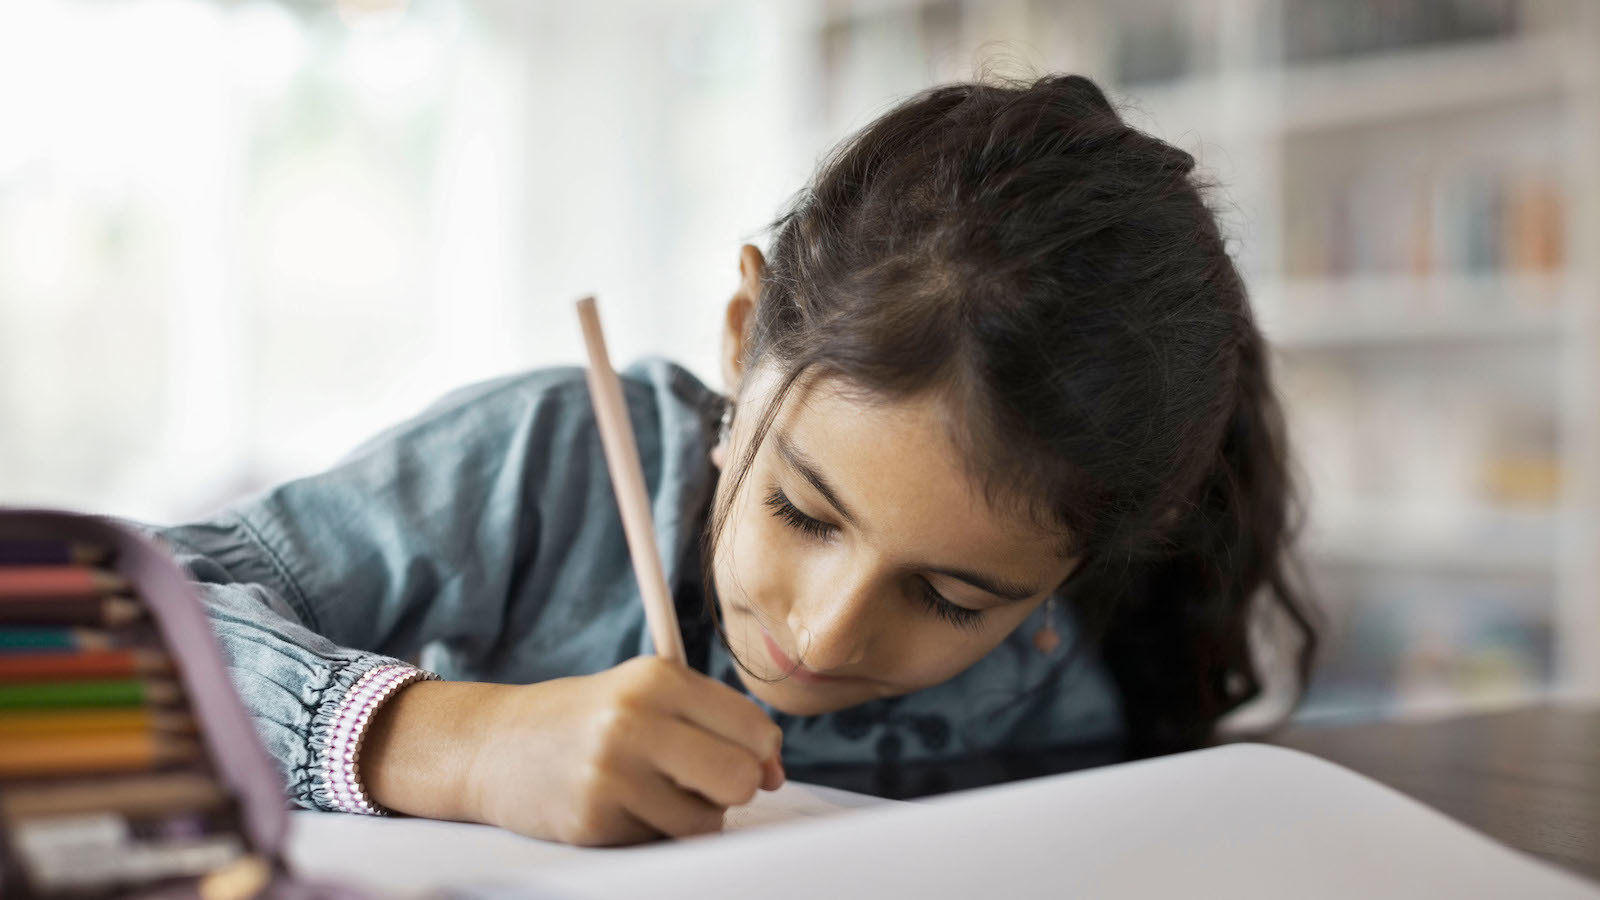 Goal-Setting and Self-Management for Students in the New Year